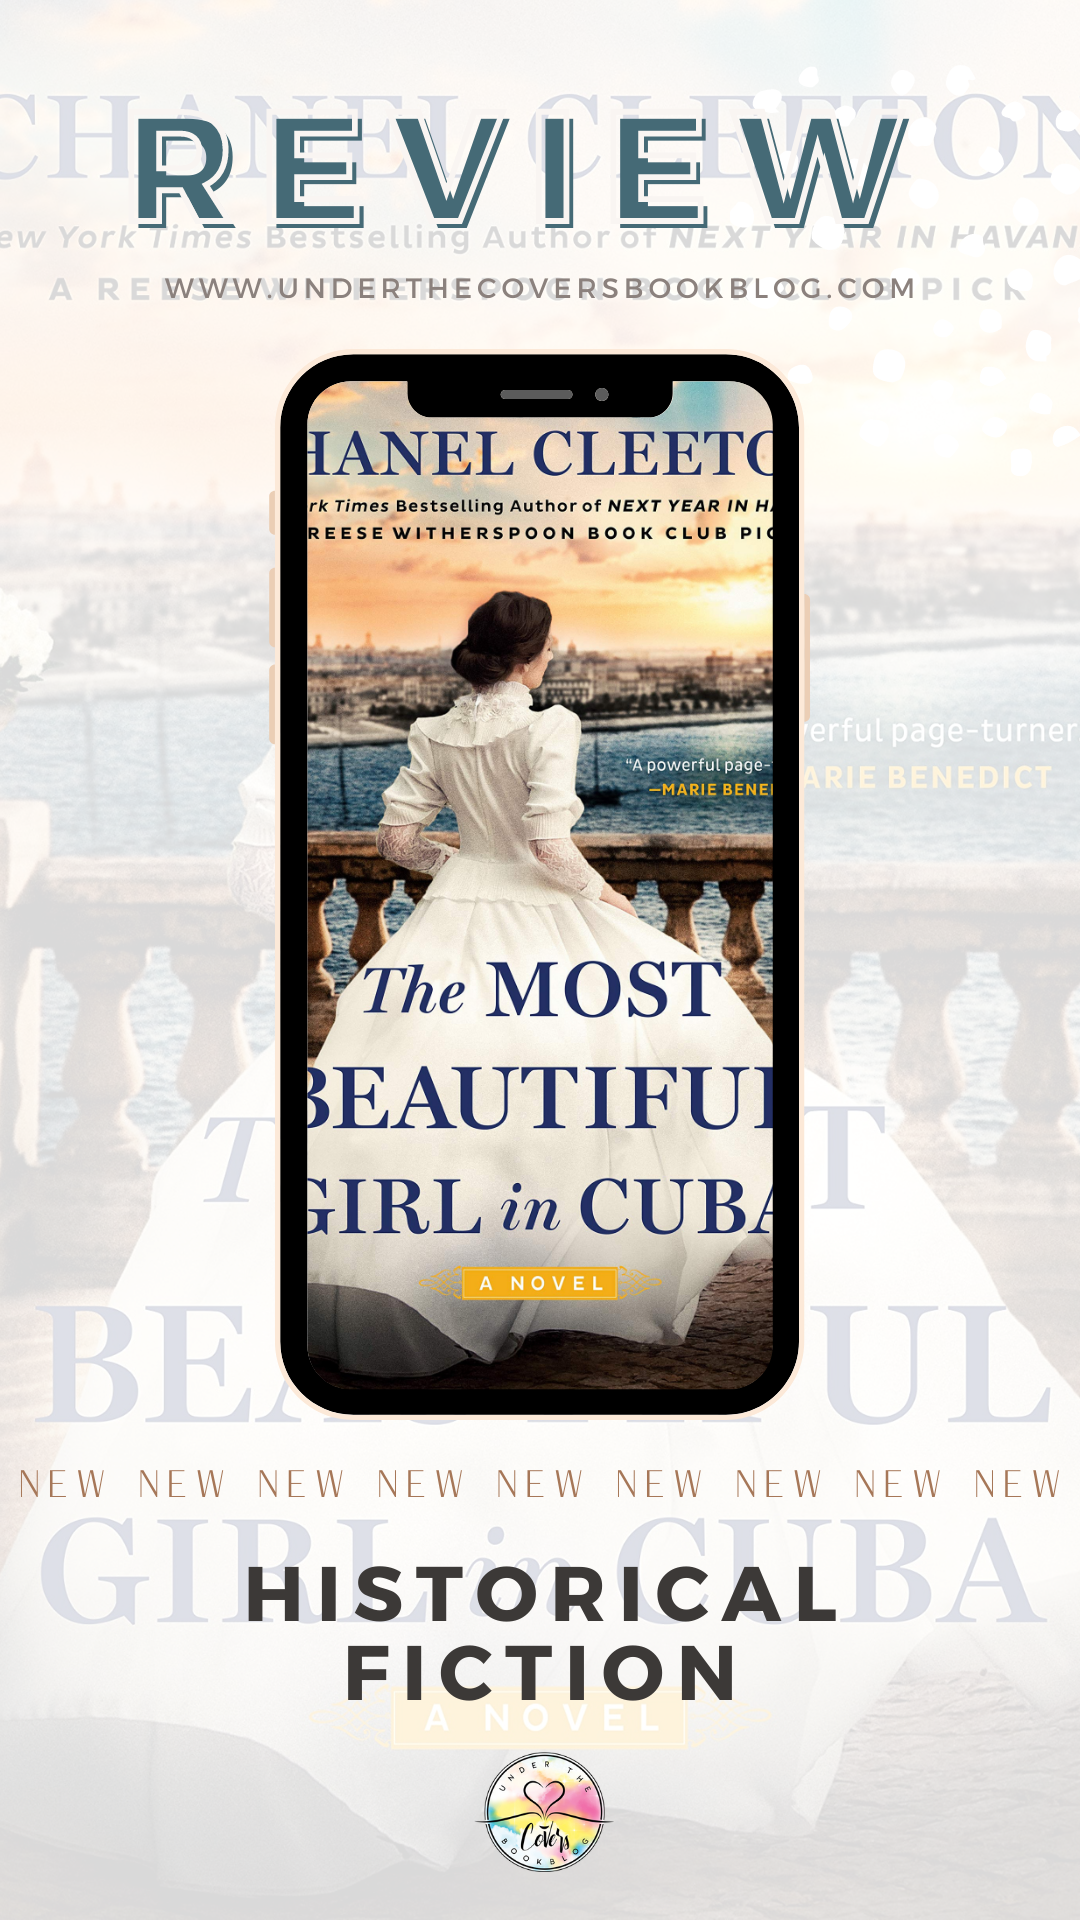 ARC Review: The Most Beautiful Girl in Cuba by Chanel Cleeton